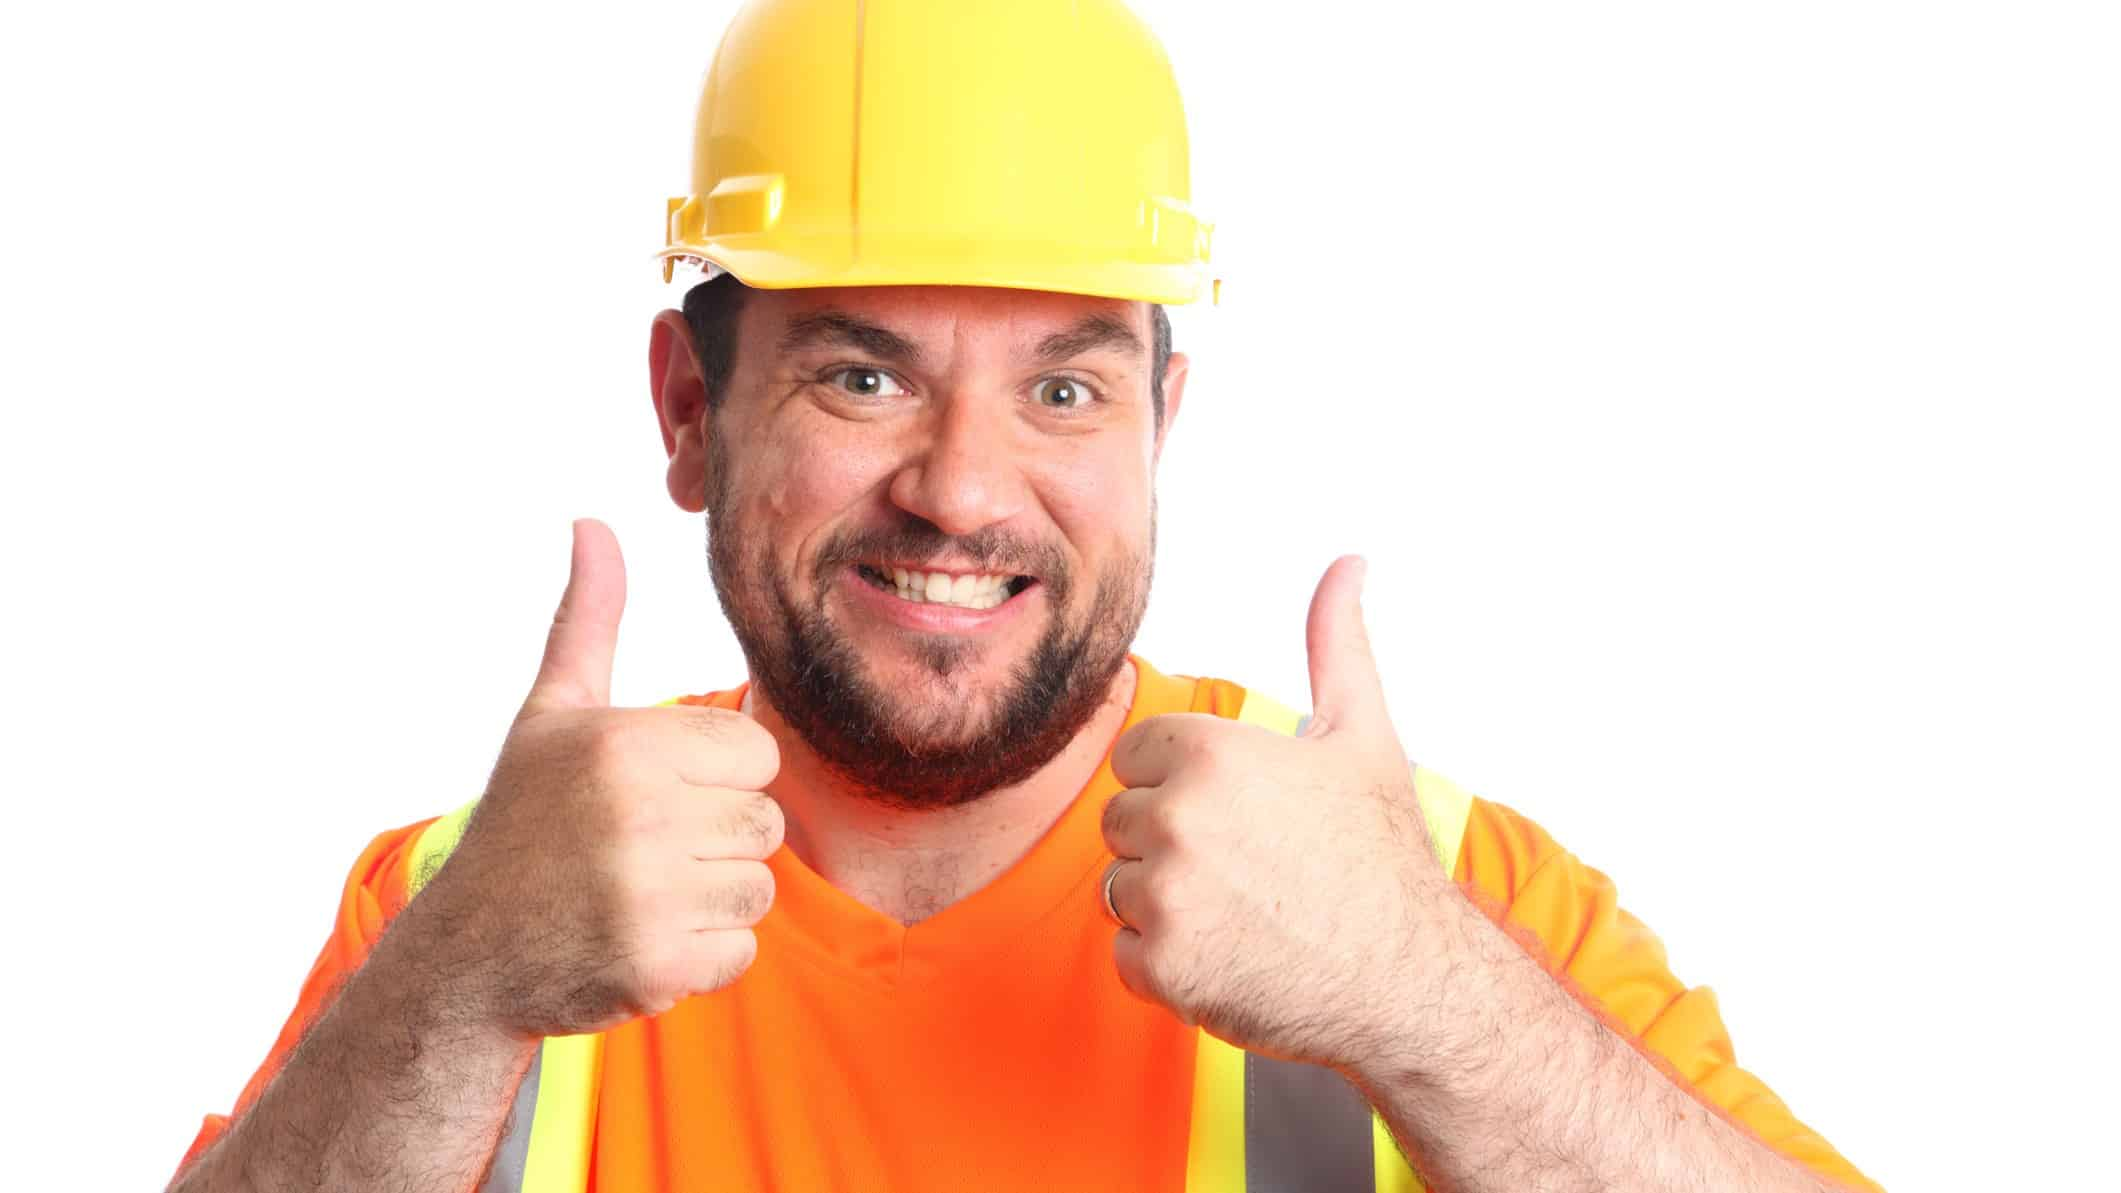 ASX shares China GDP happy worker does the thumbs up, indicating a rising share price in mining or construction